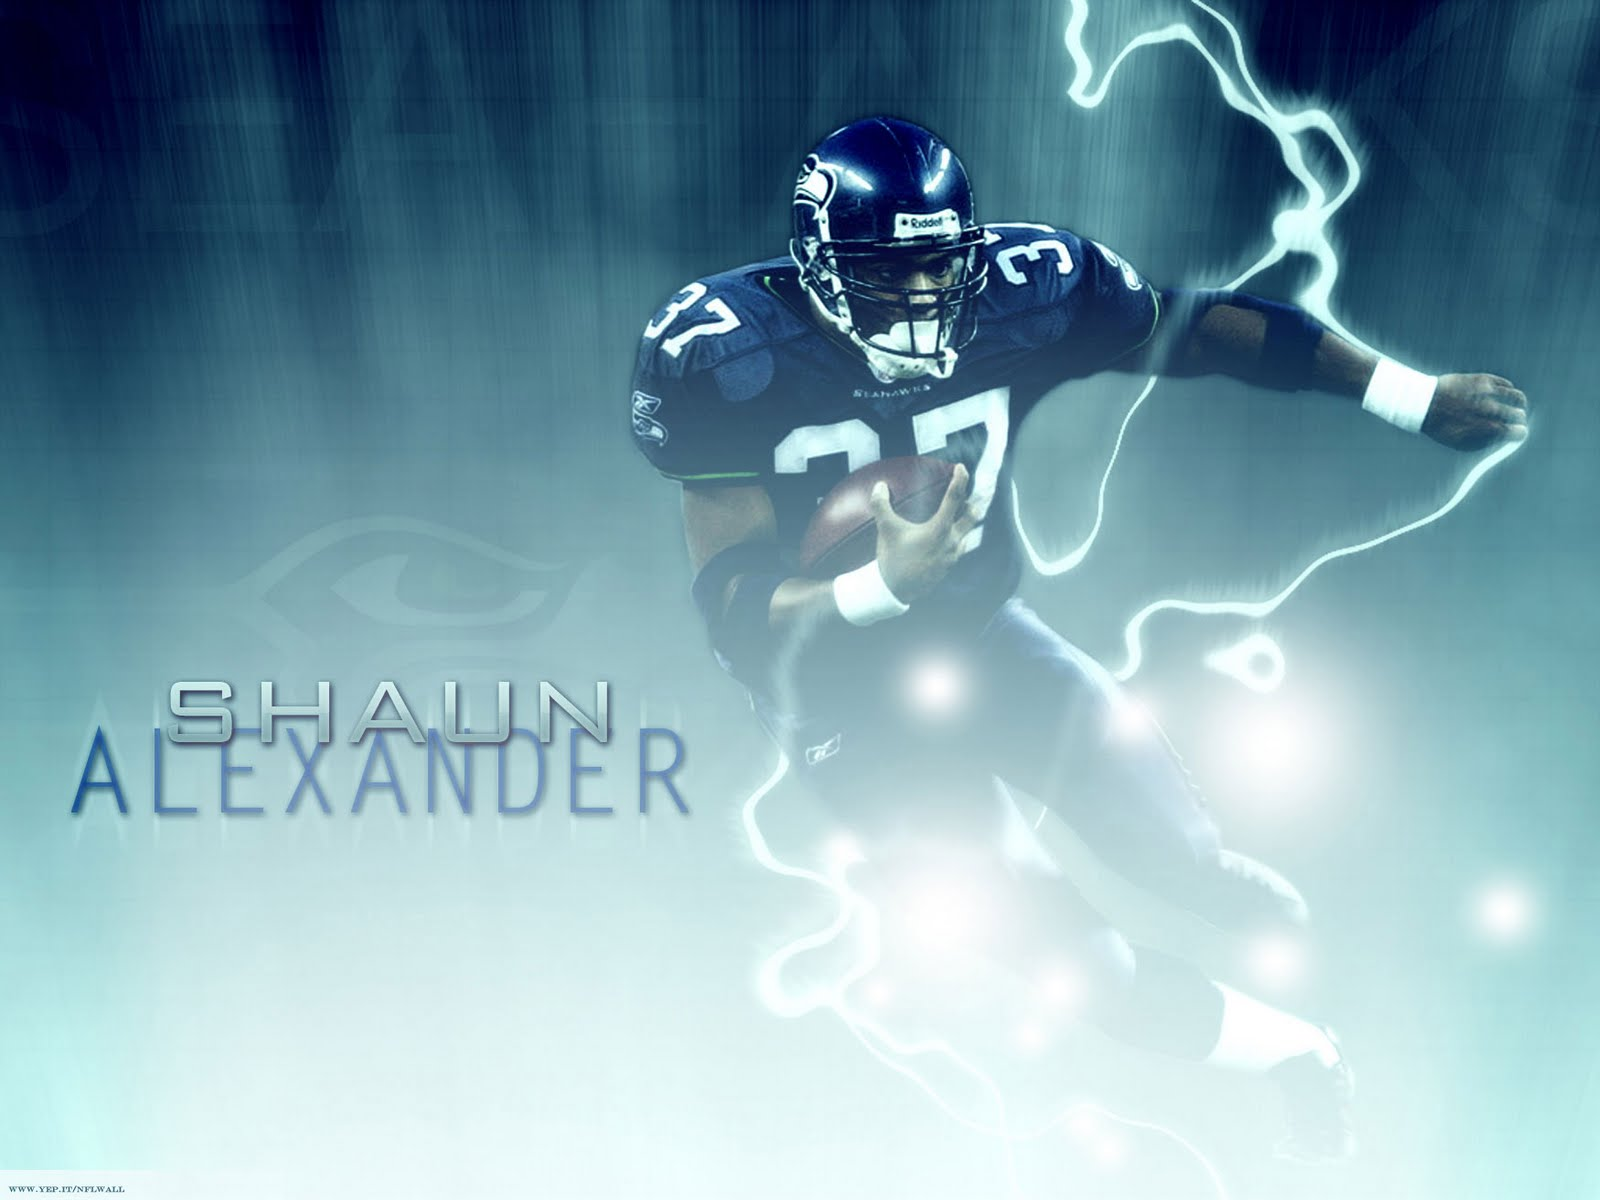 Alexander Shaun wallpaper, Seattle Seahawks wallpaper, nfl wallpaper